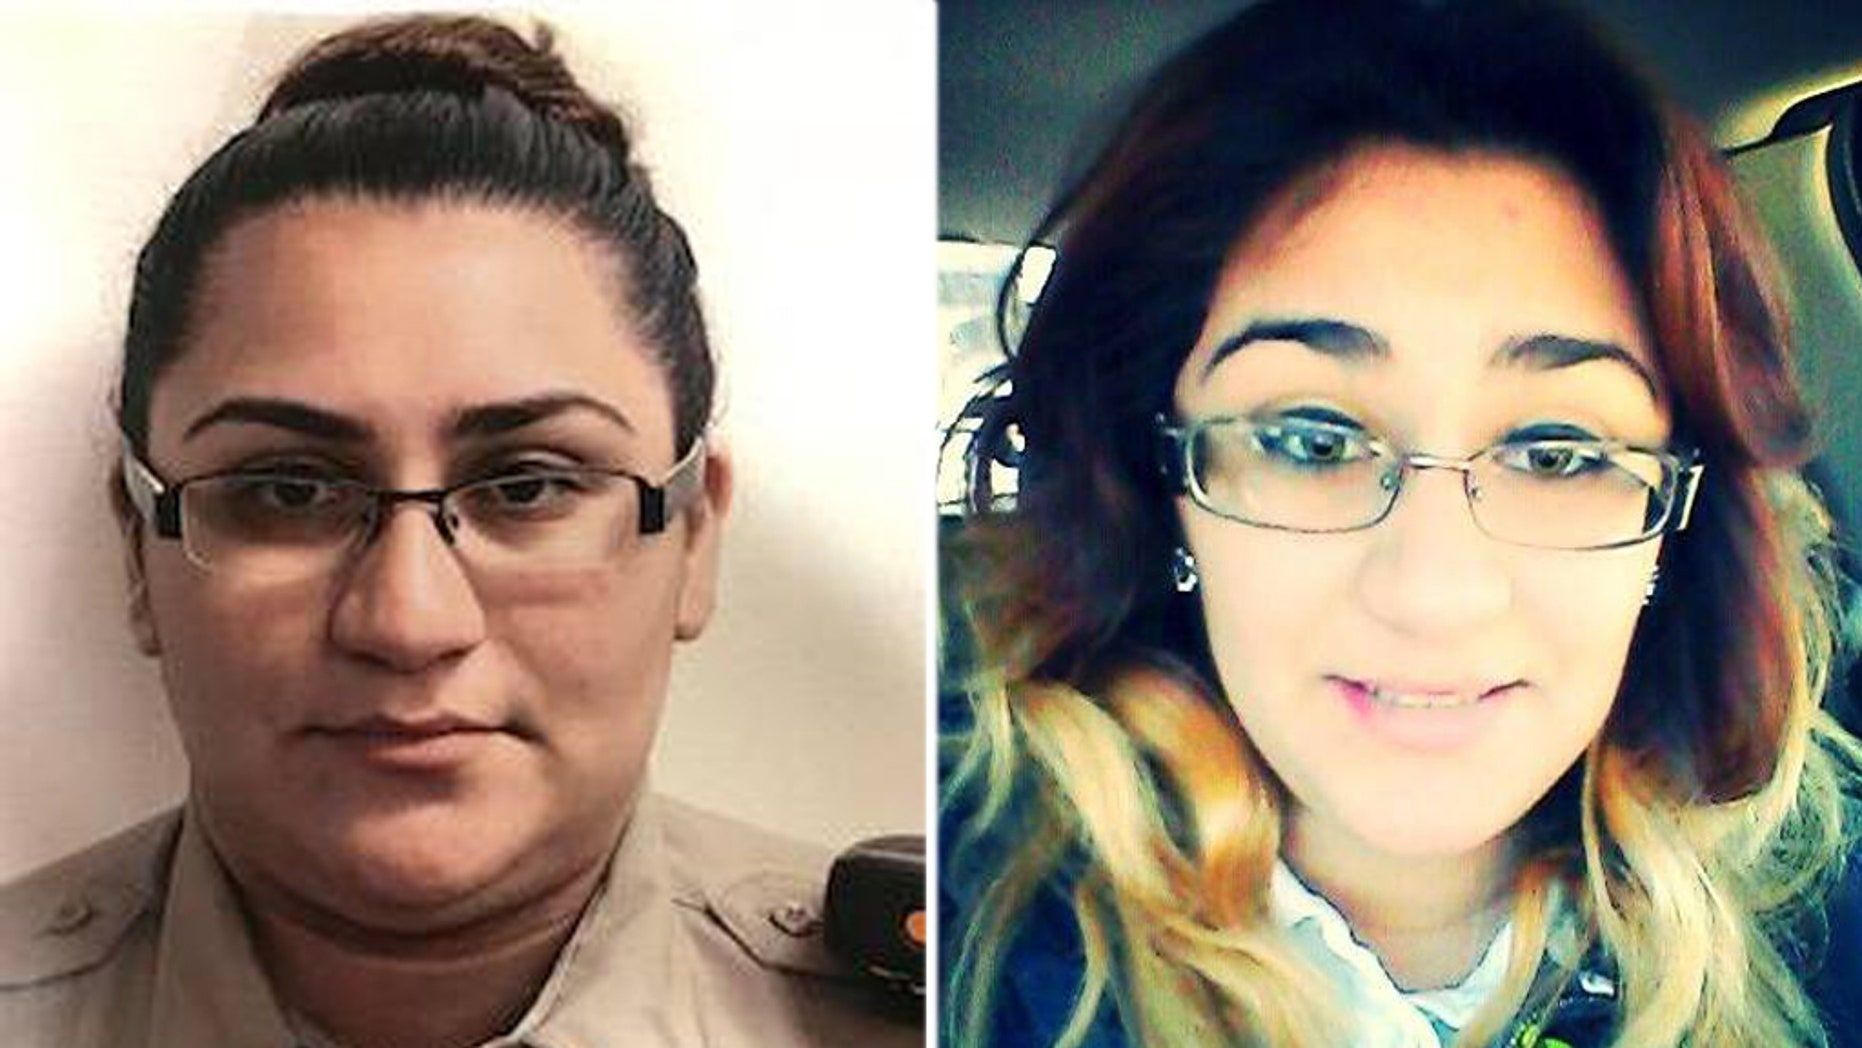 Texas sheriff's deputy Loren Vasquez, 23, died after her patrol car flipped into a water-logged ditch.